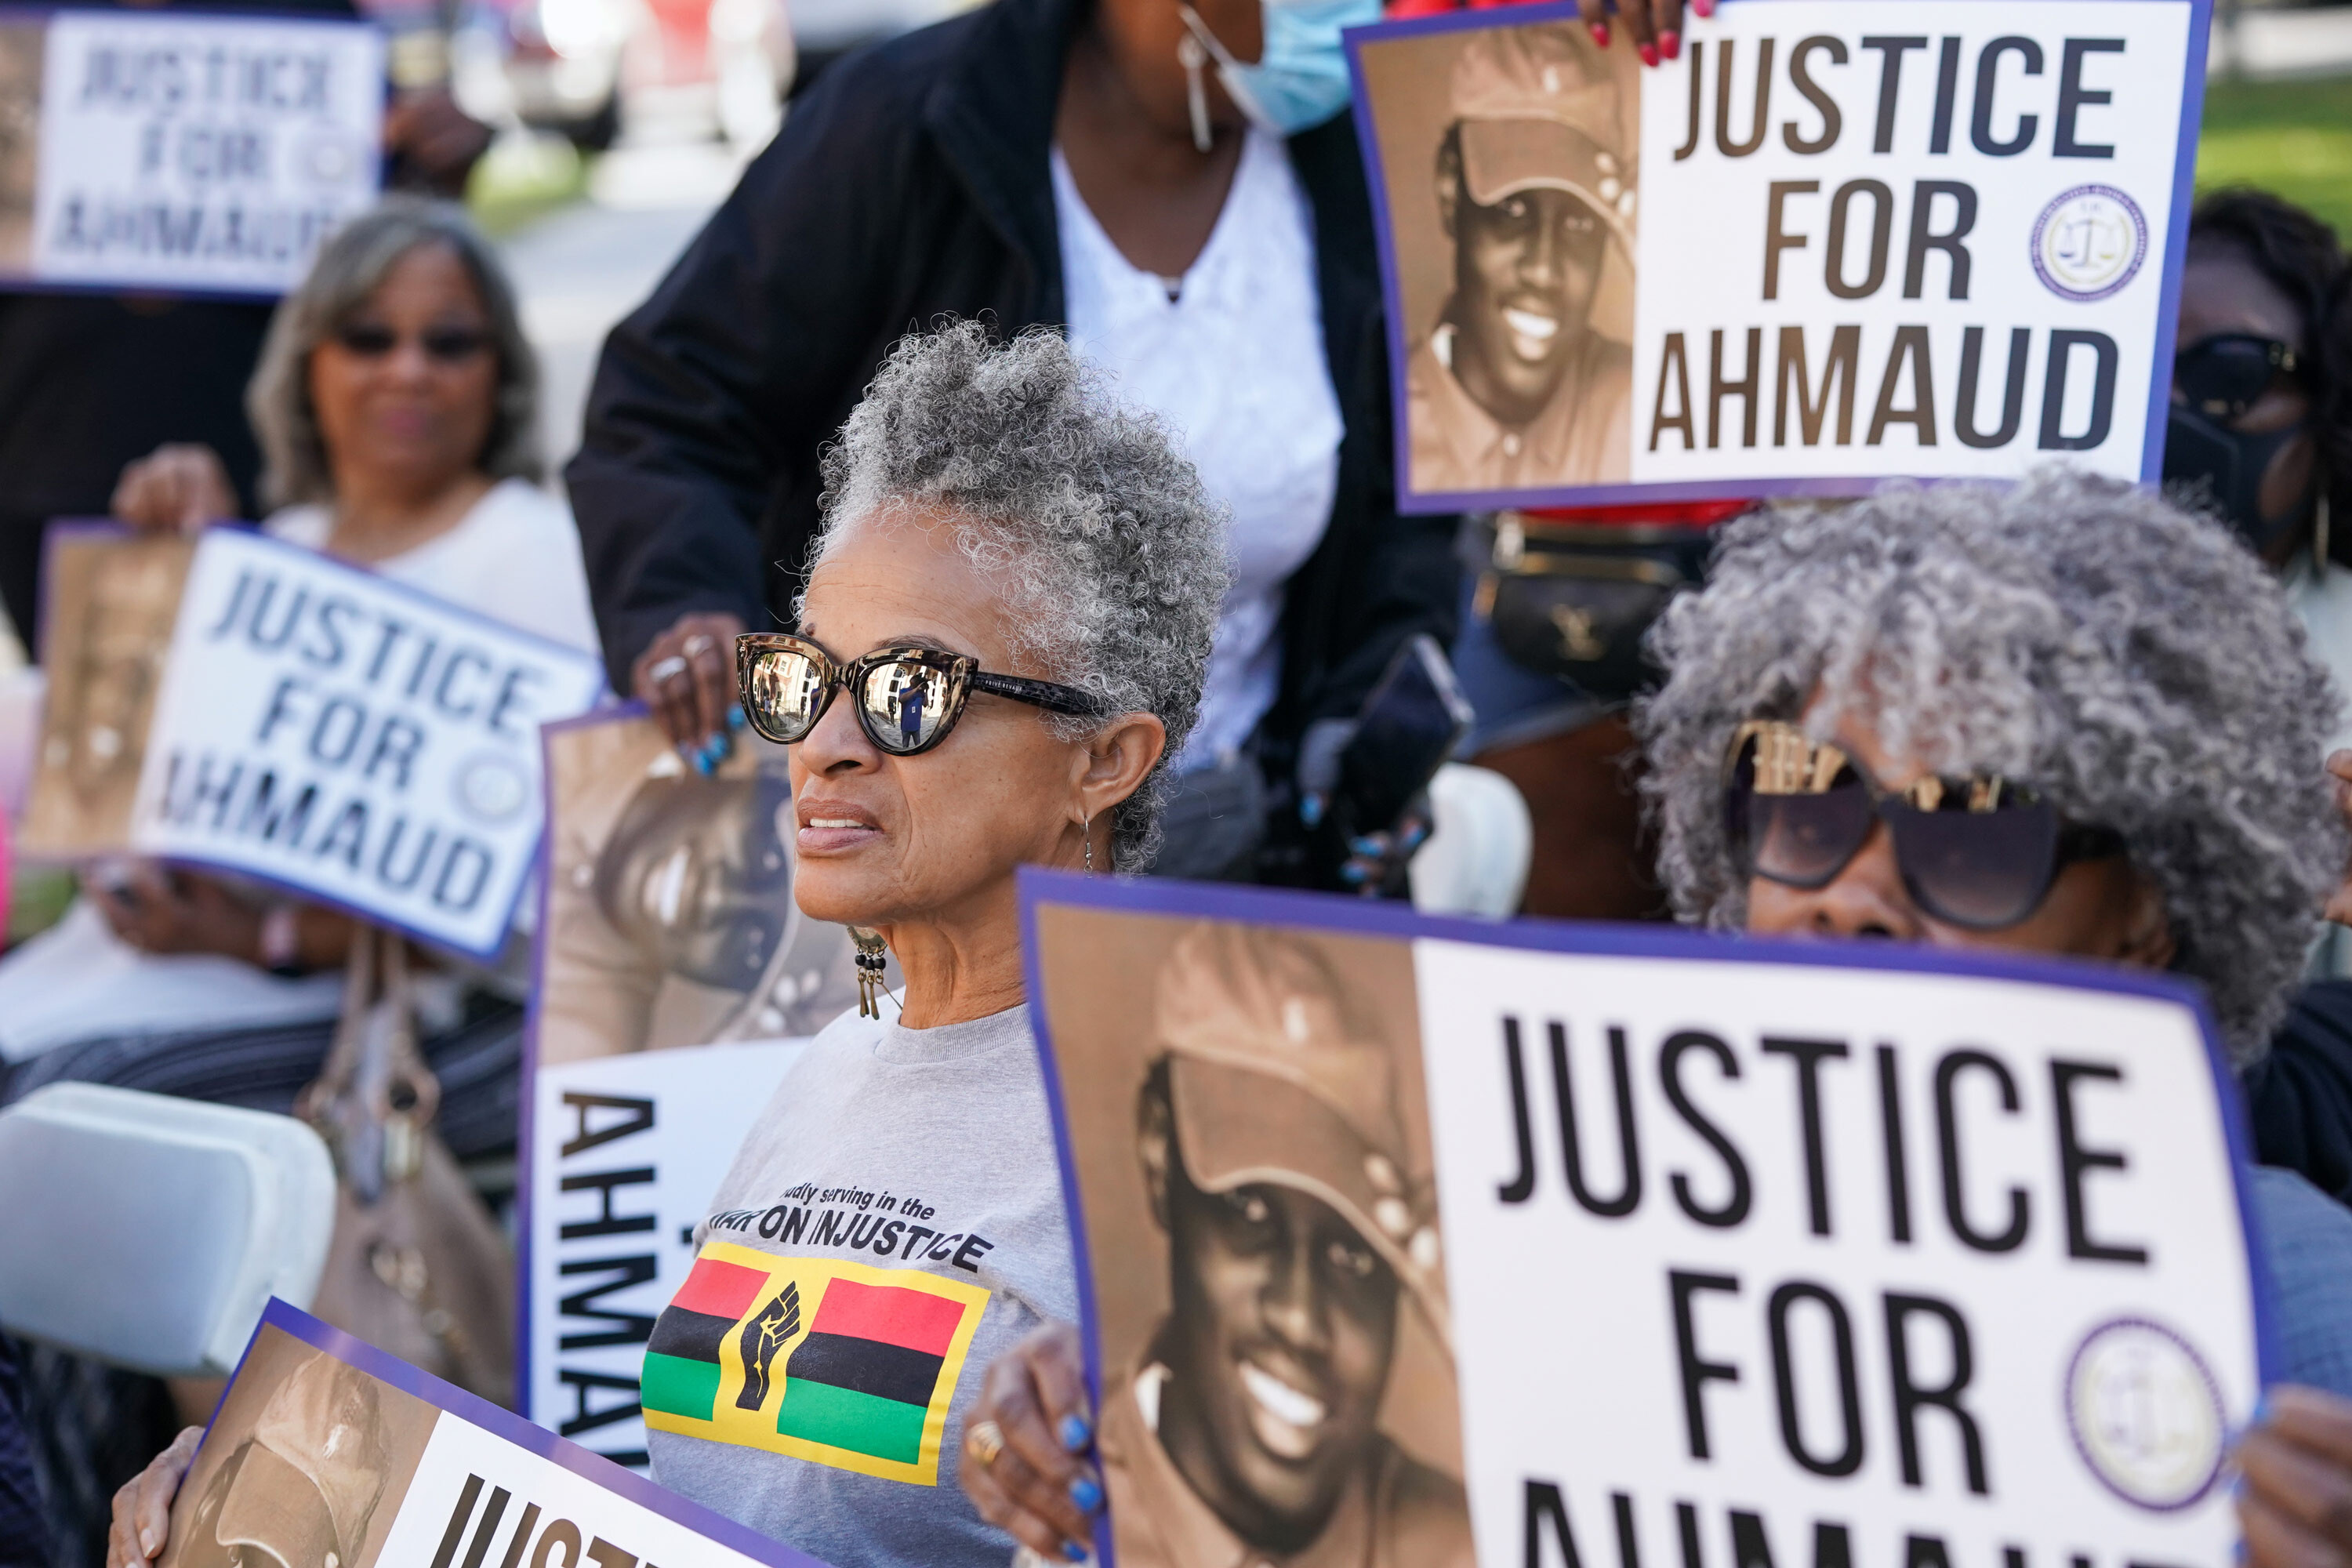 As the trial for Ahmaud Arbery's killing starts, activists from across the country are showing up to support him and his family